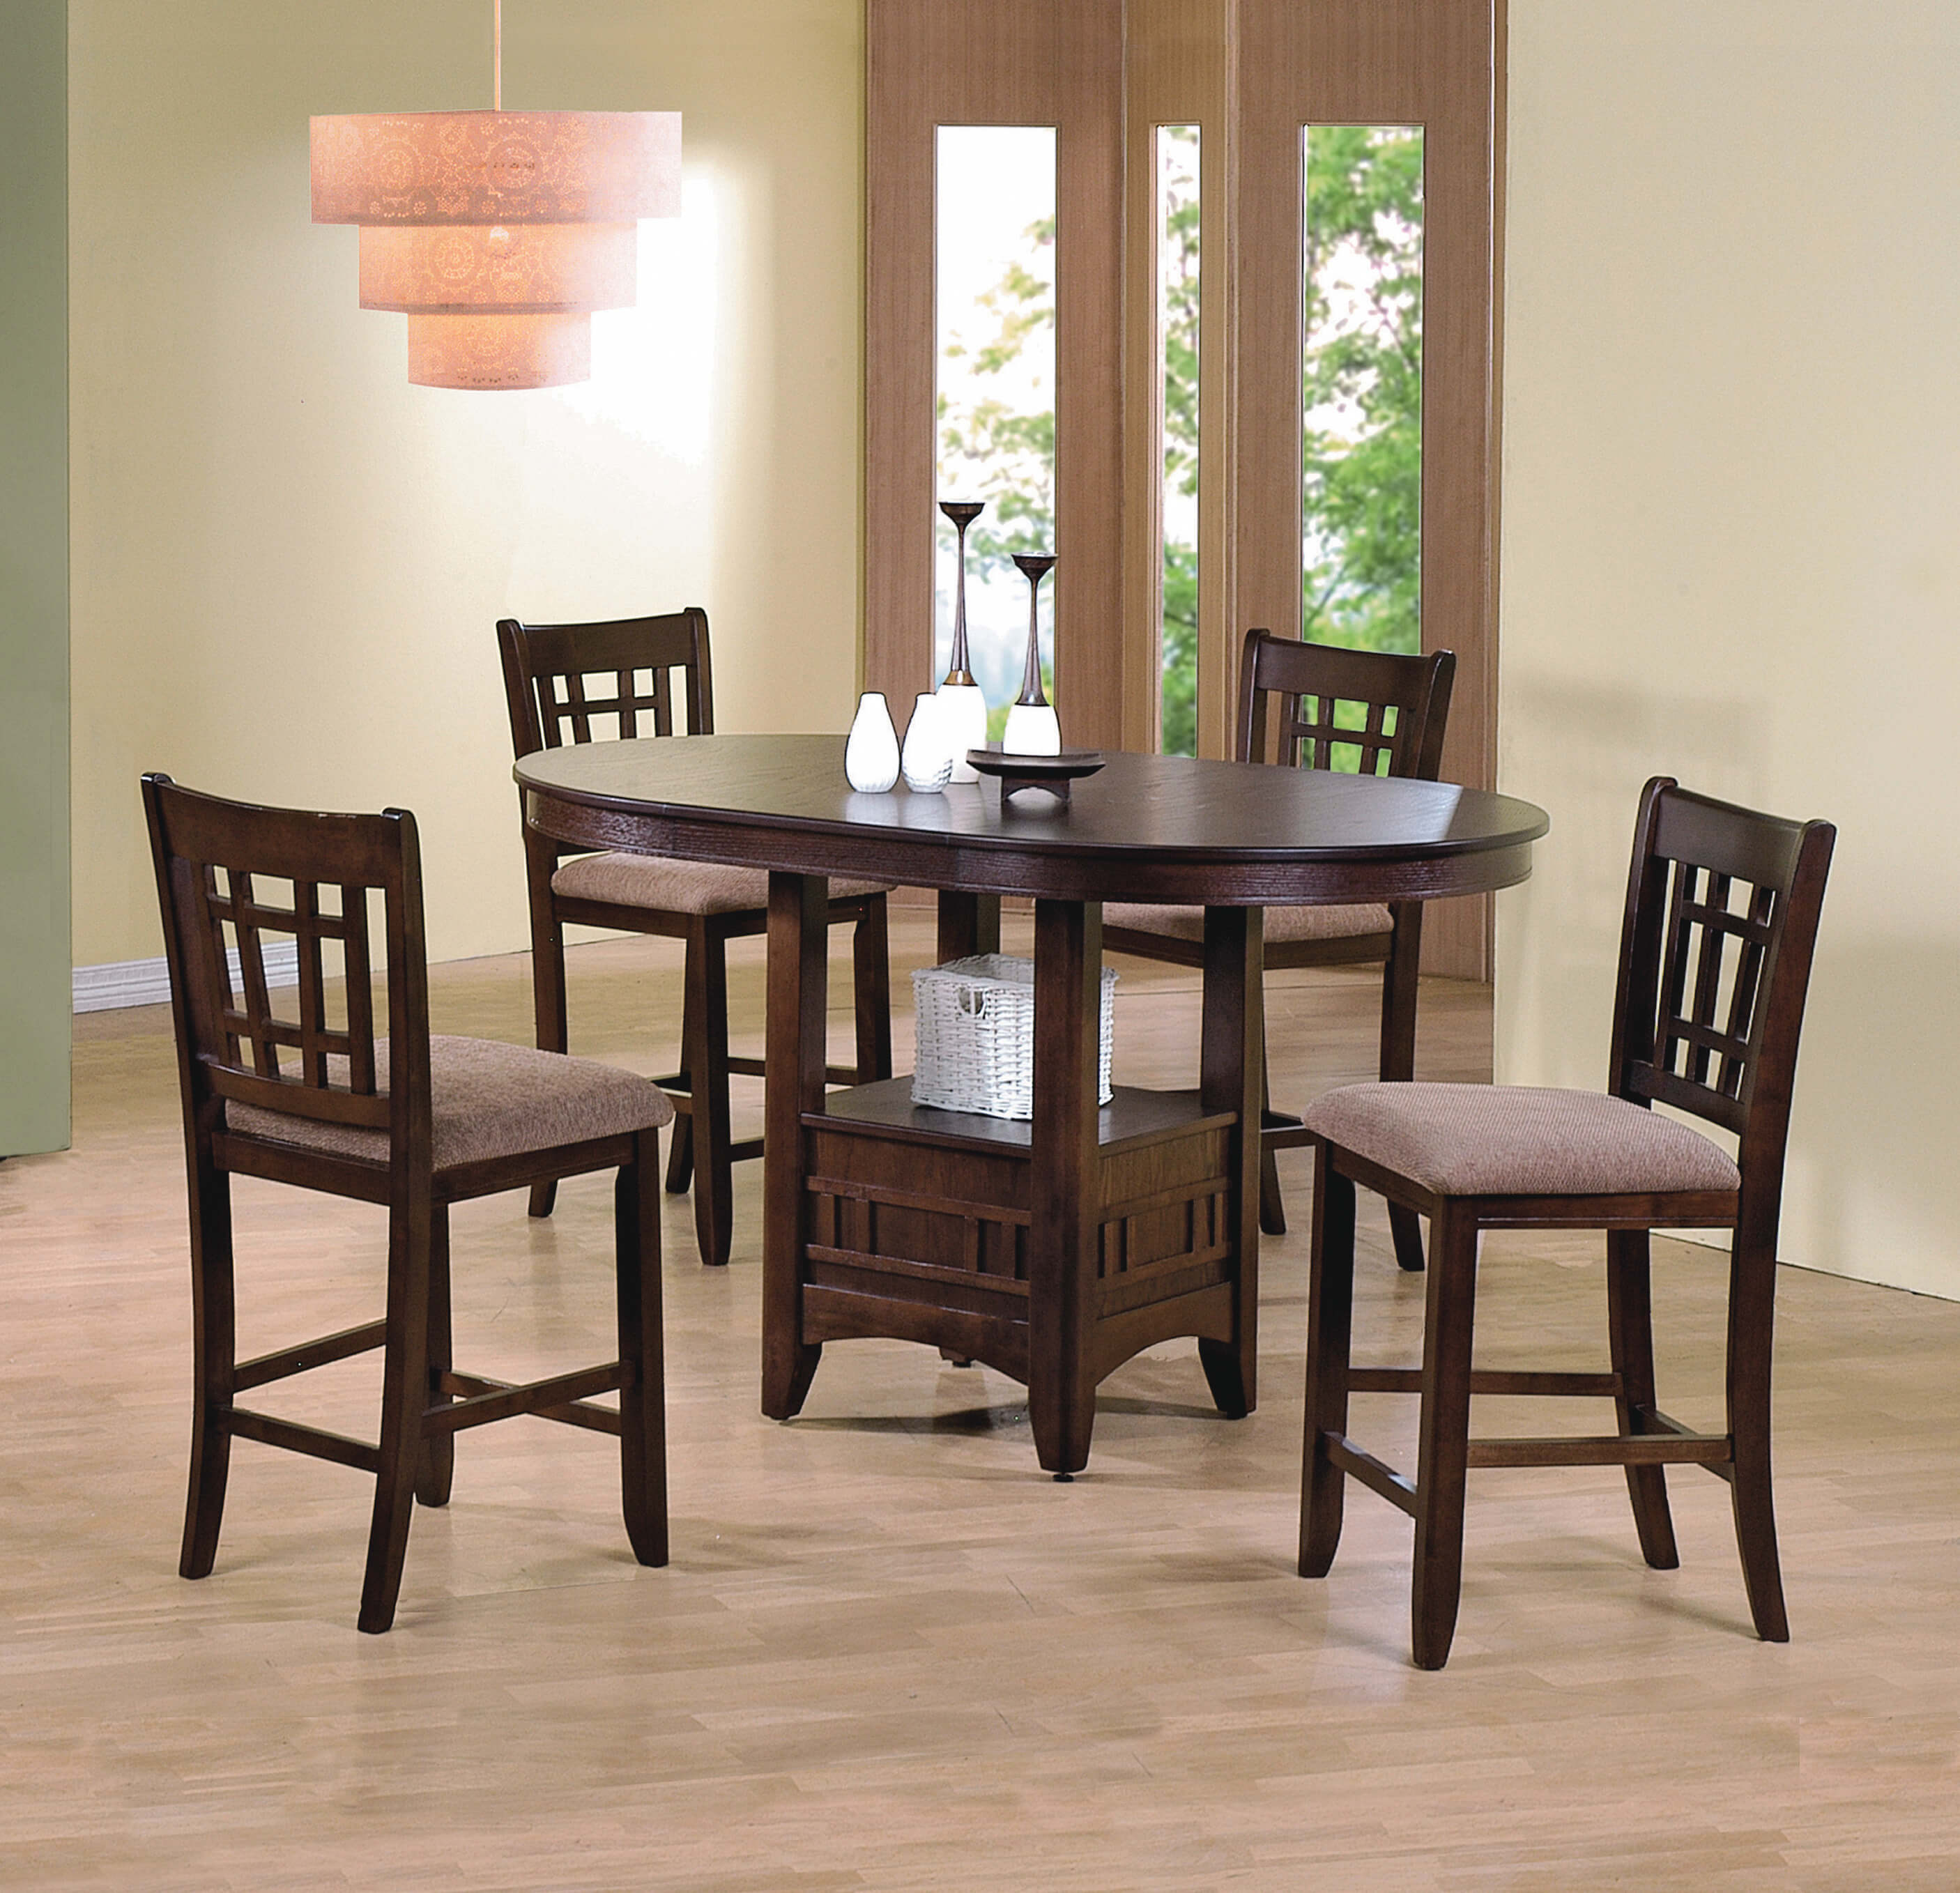 Counter Dining Room Sets: Empire Counter Height Dining Room Set